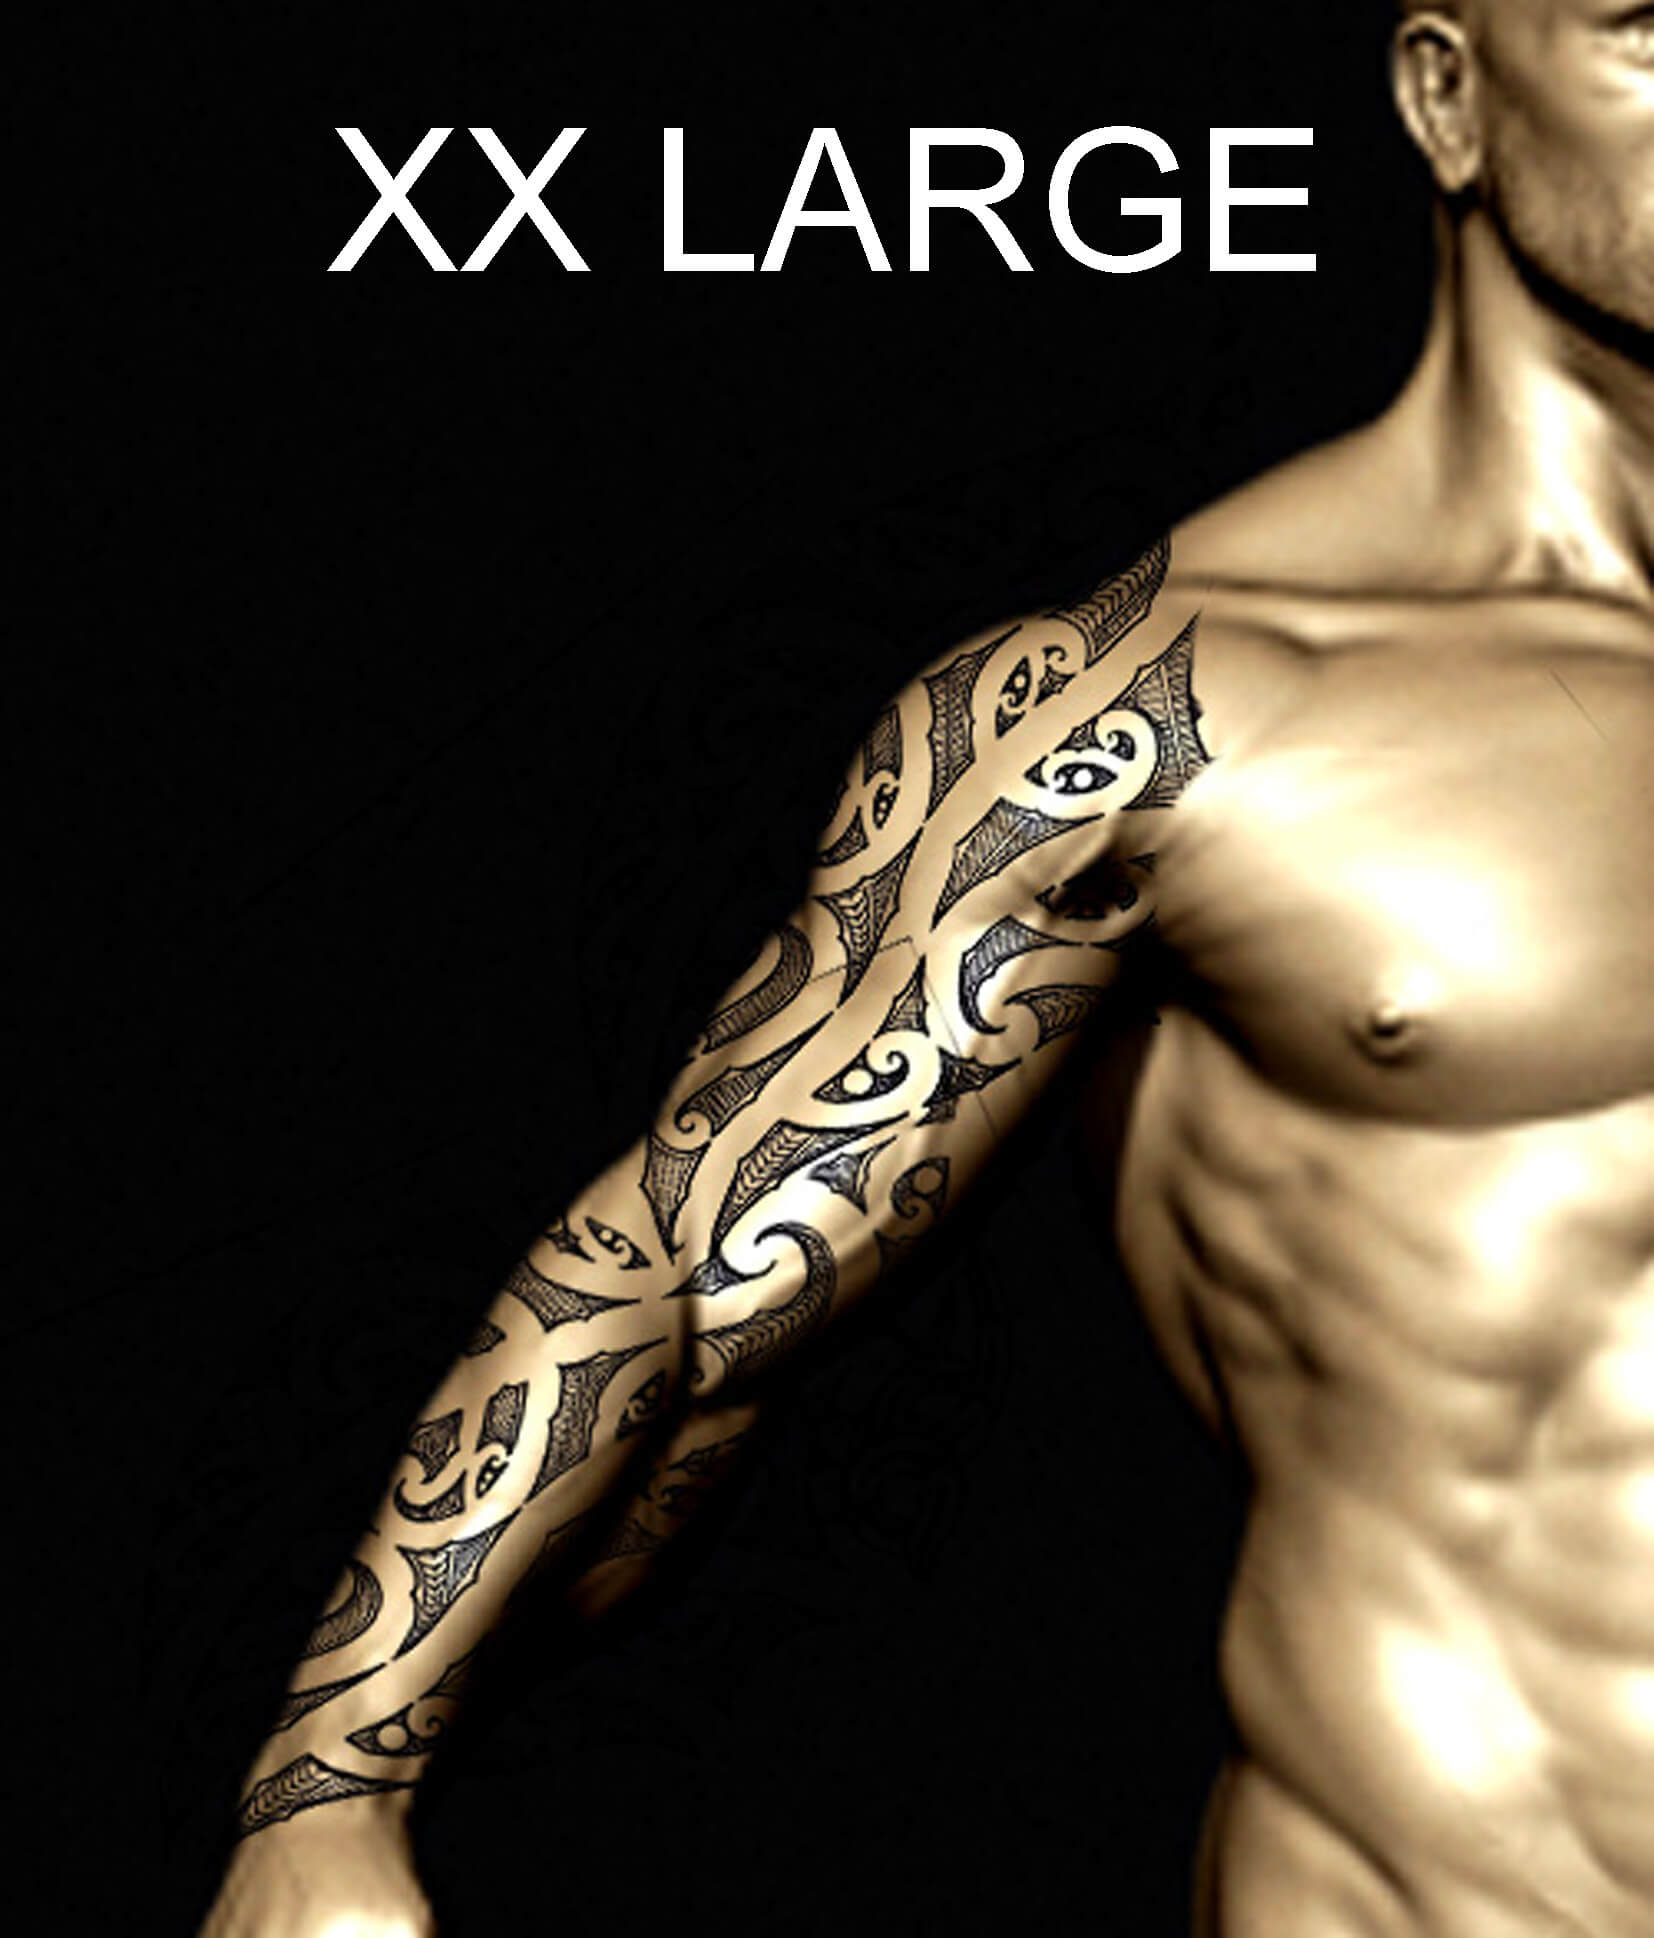 Maori Forearm Tattoo Designs: Order Your Authentic & Personalised Maori Or Polynesian